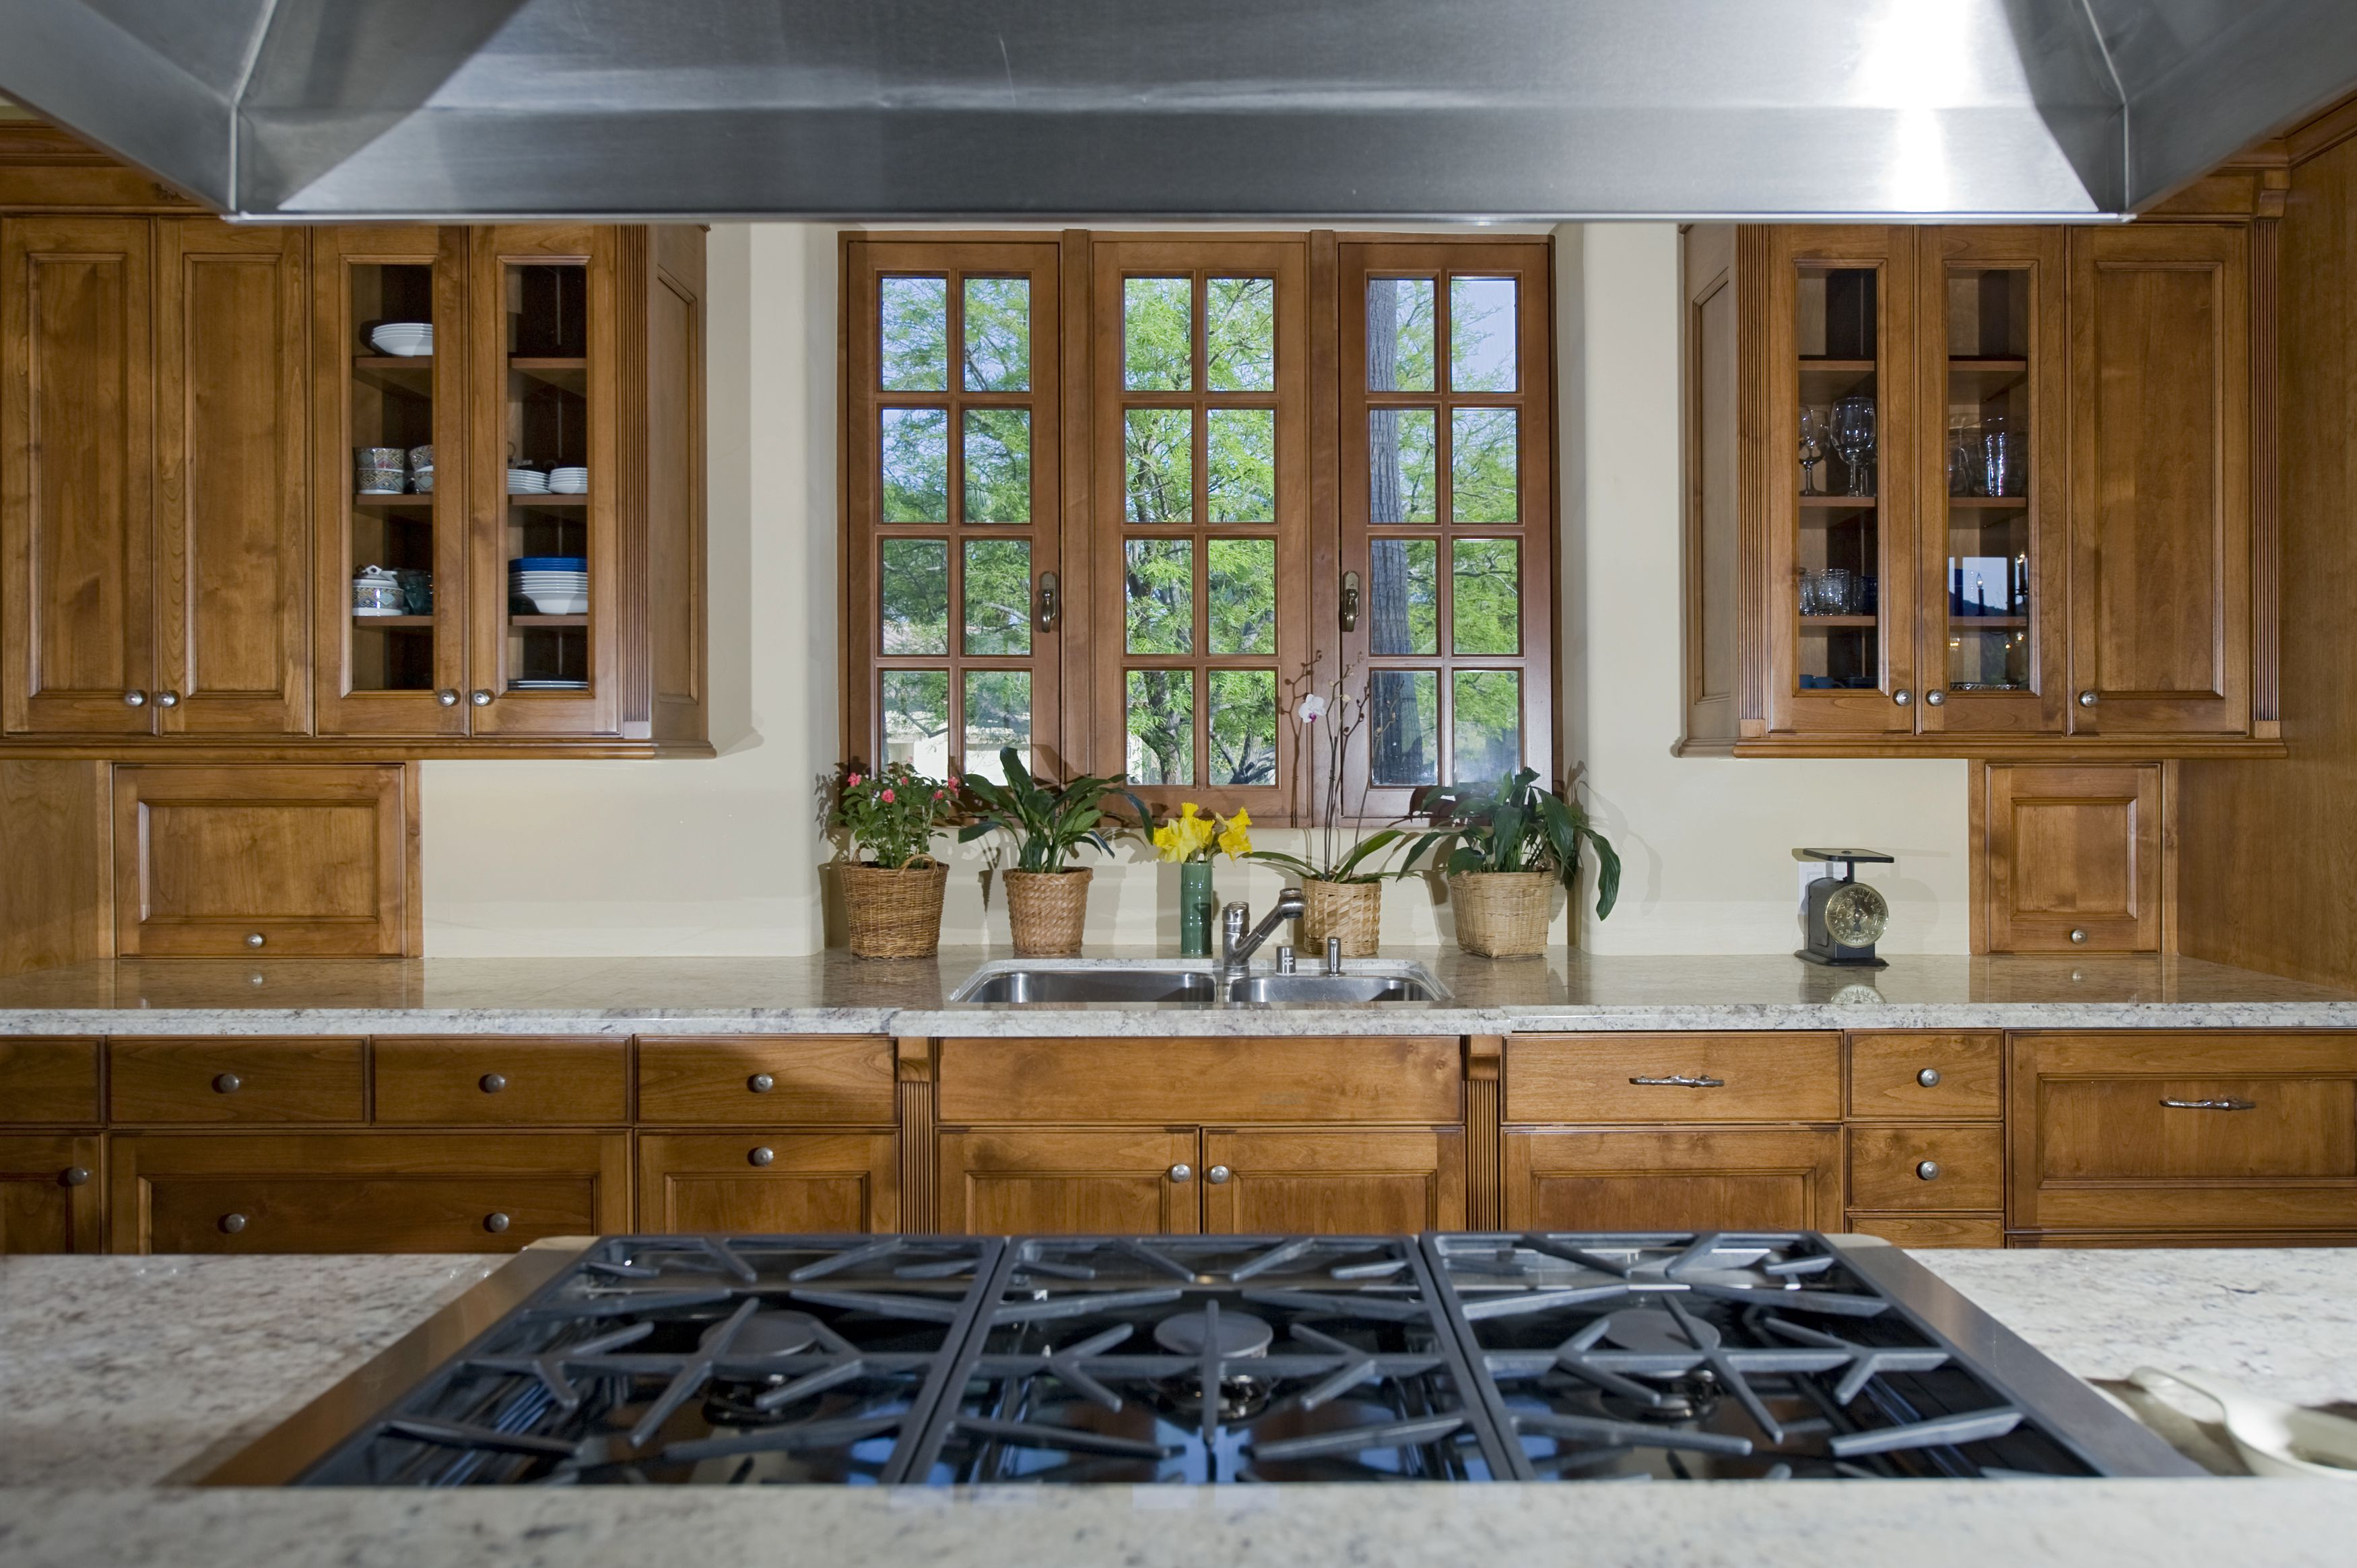 9 Feng Shui Kitchen Tips: The Feng Shui Of Your Kitchen's Architecture